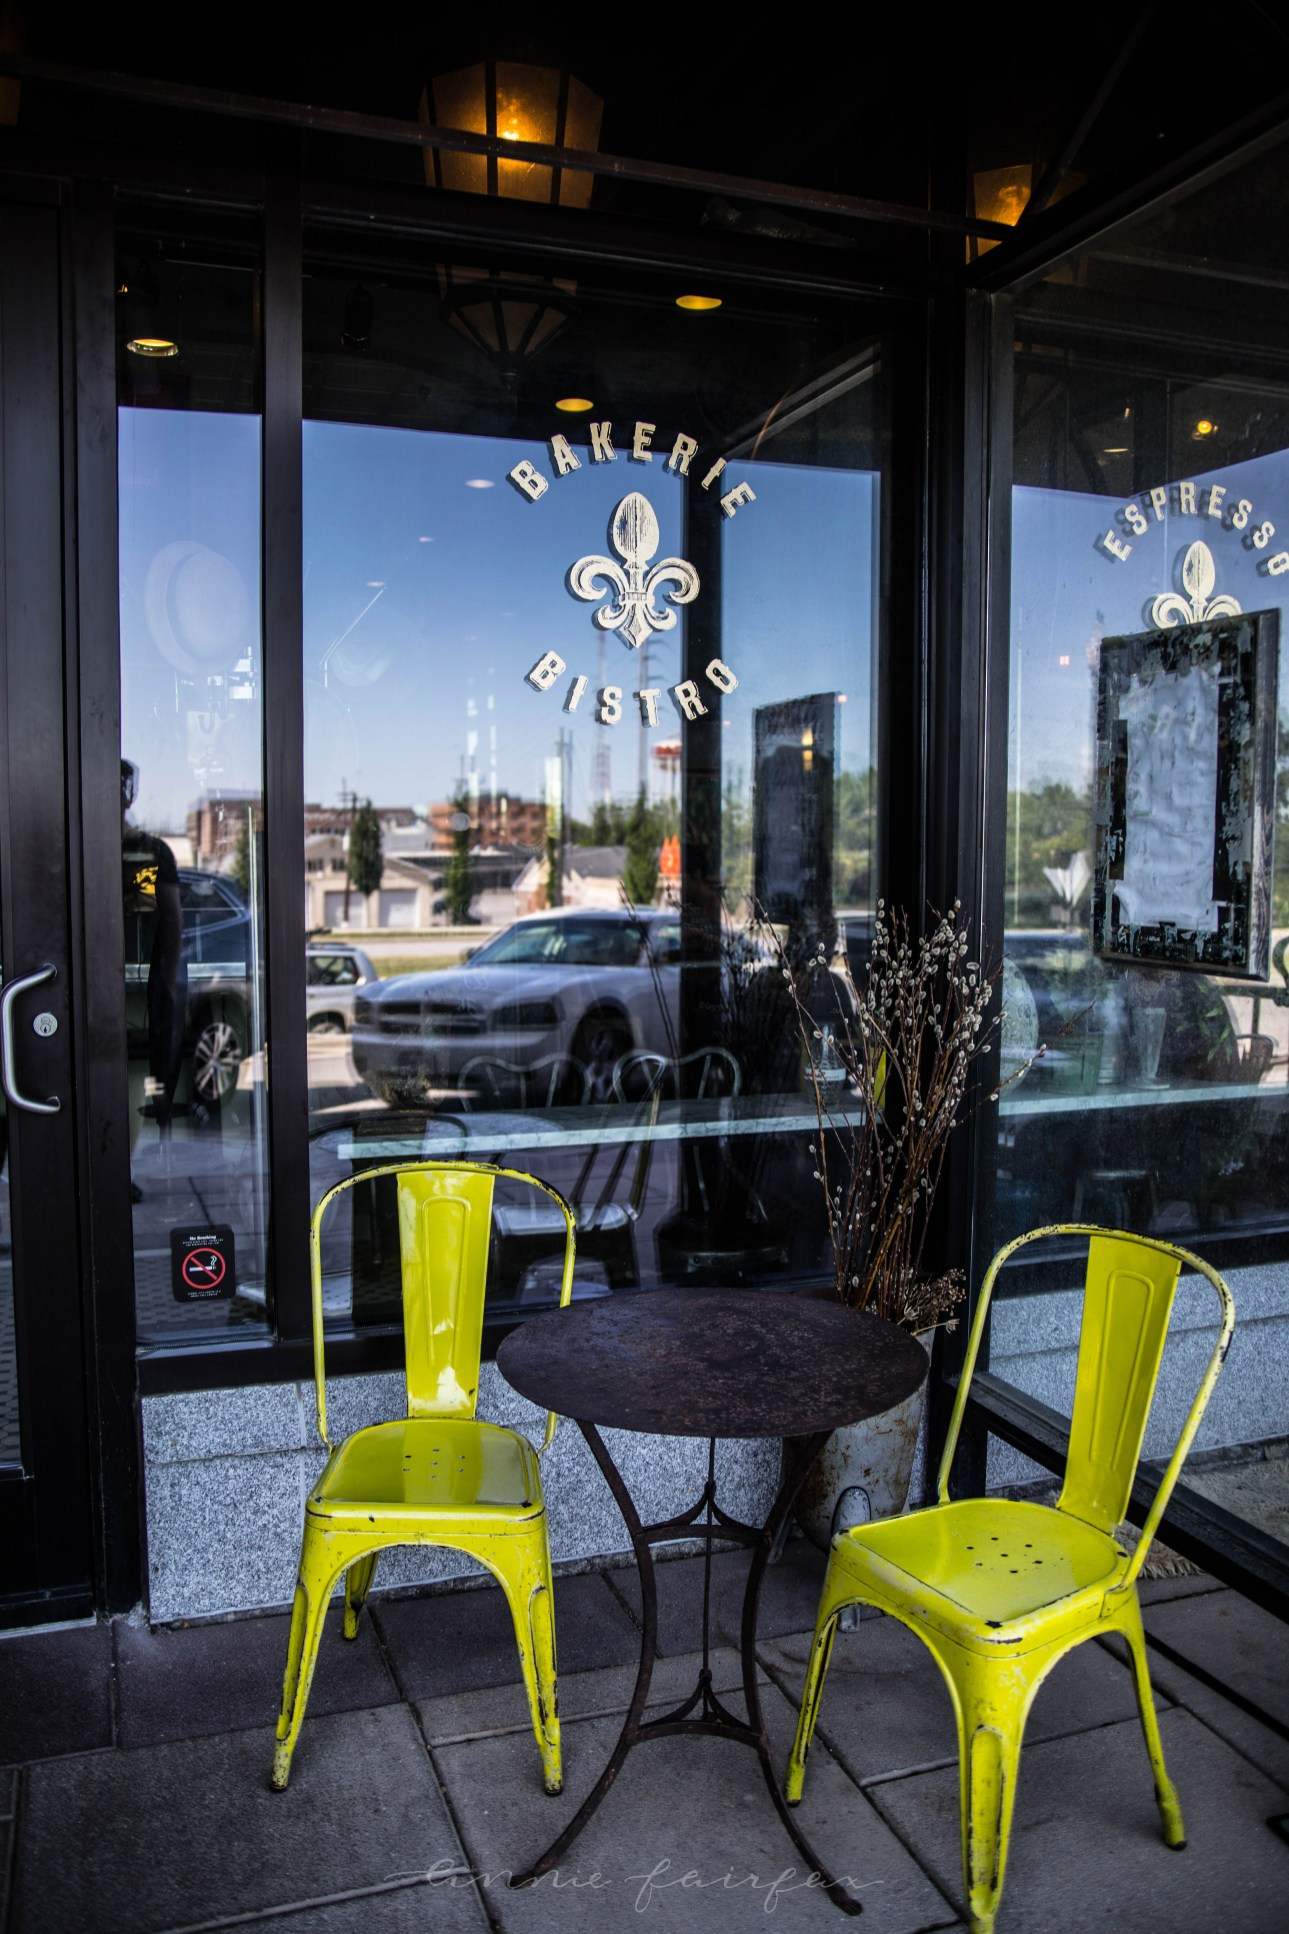 Eggshell Bistro Carmel, IN Voted Best Brunch in Indiana